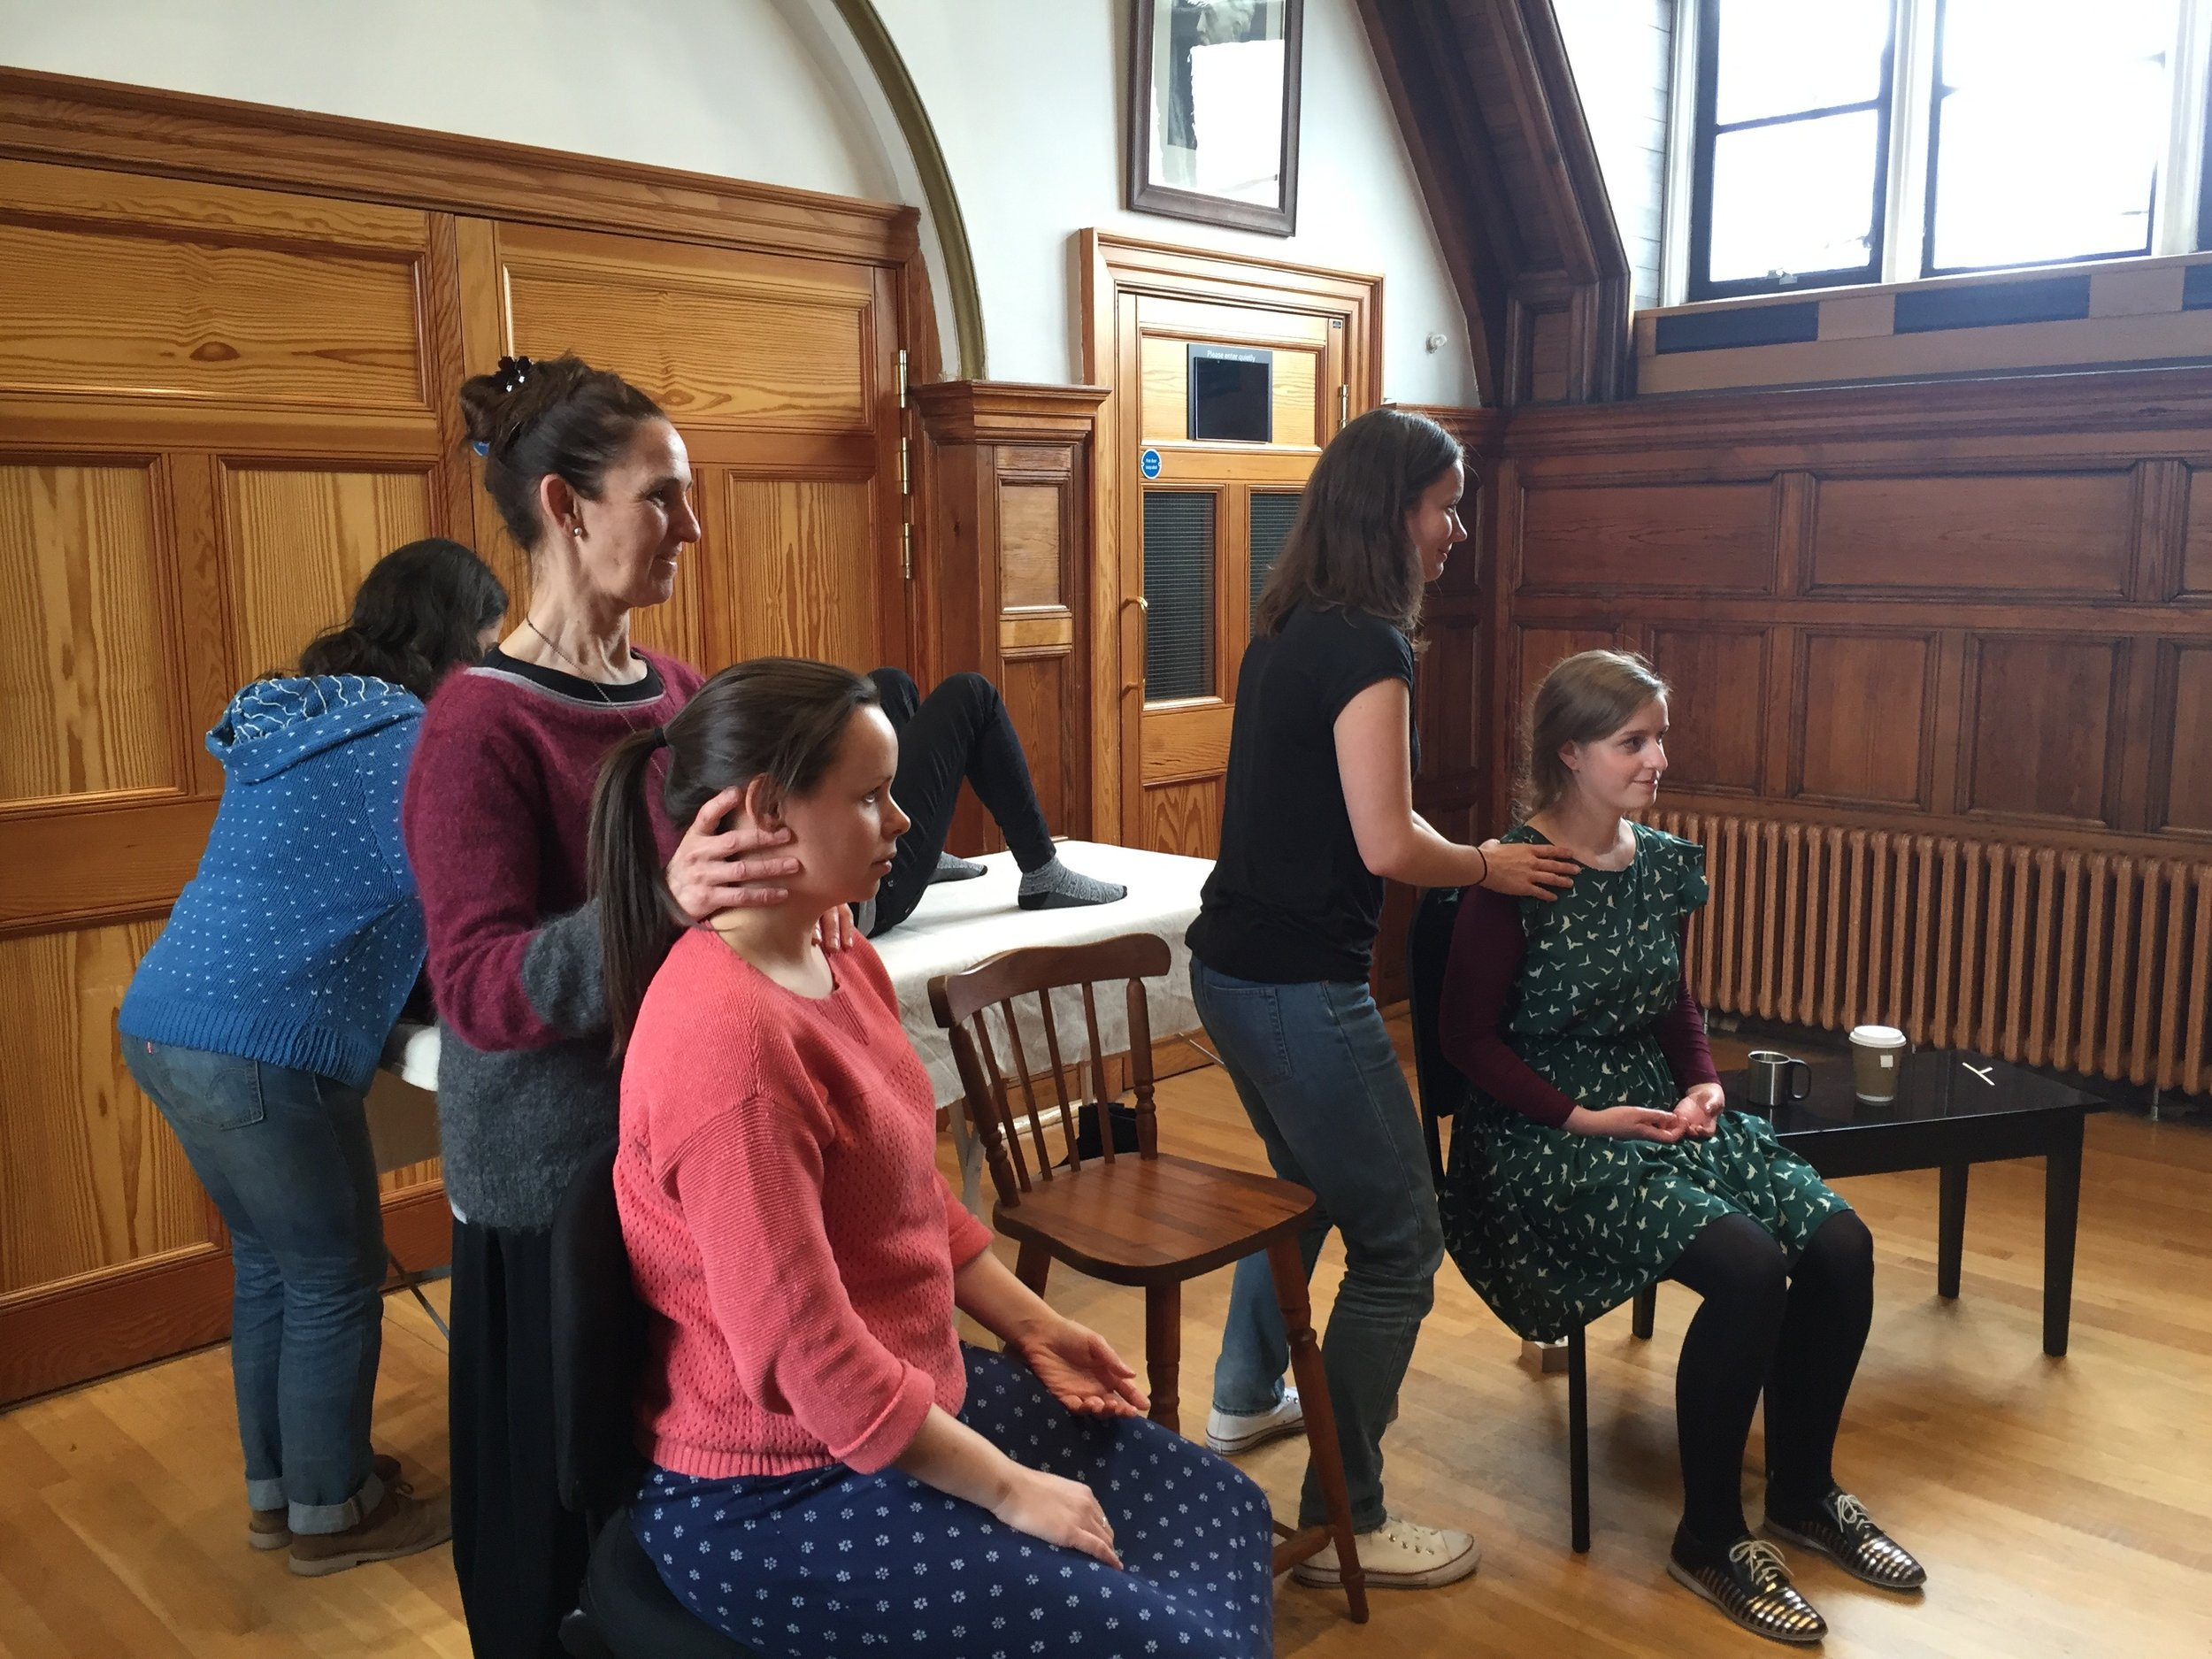 'Hands on' work at the RCM